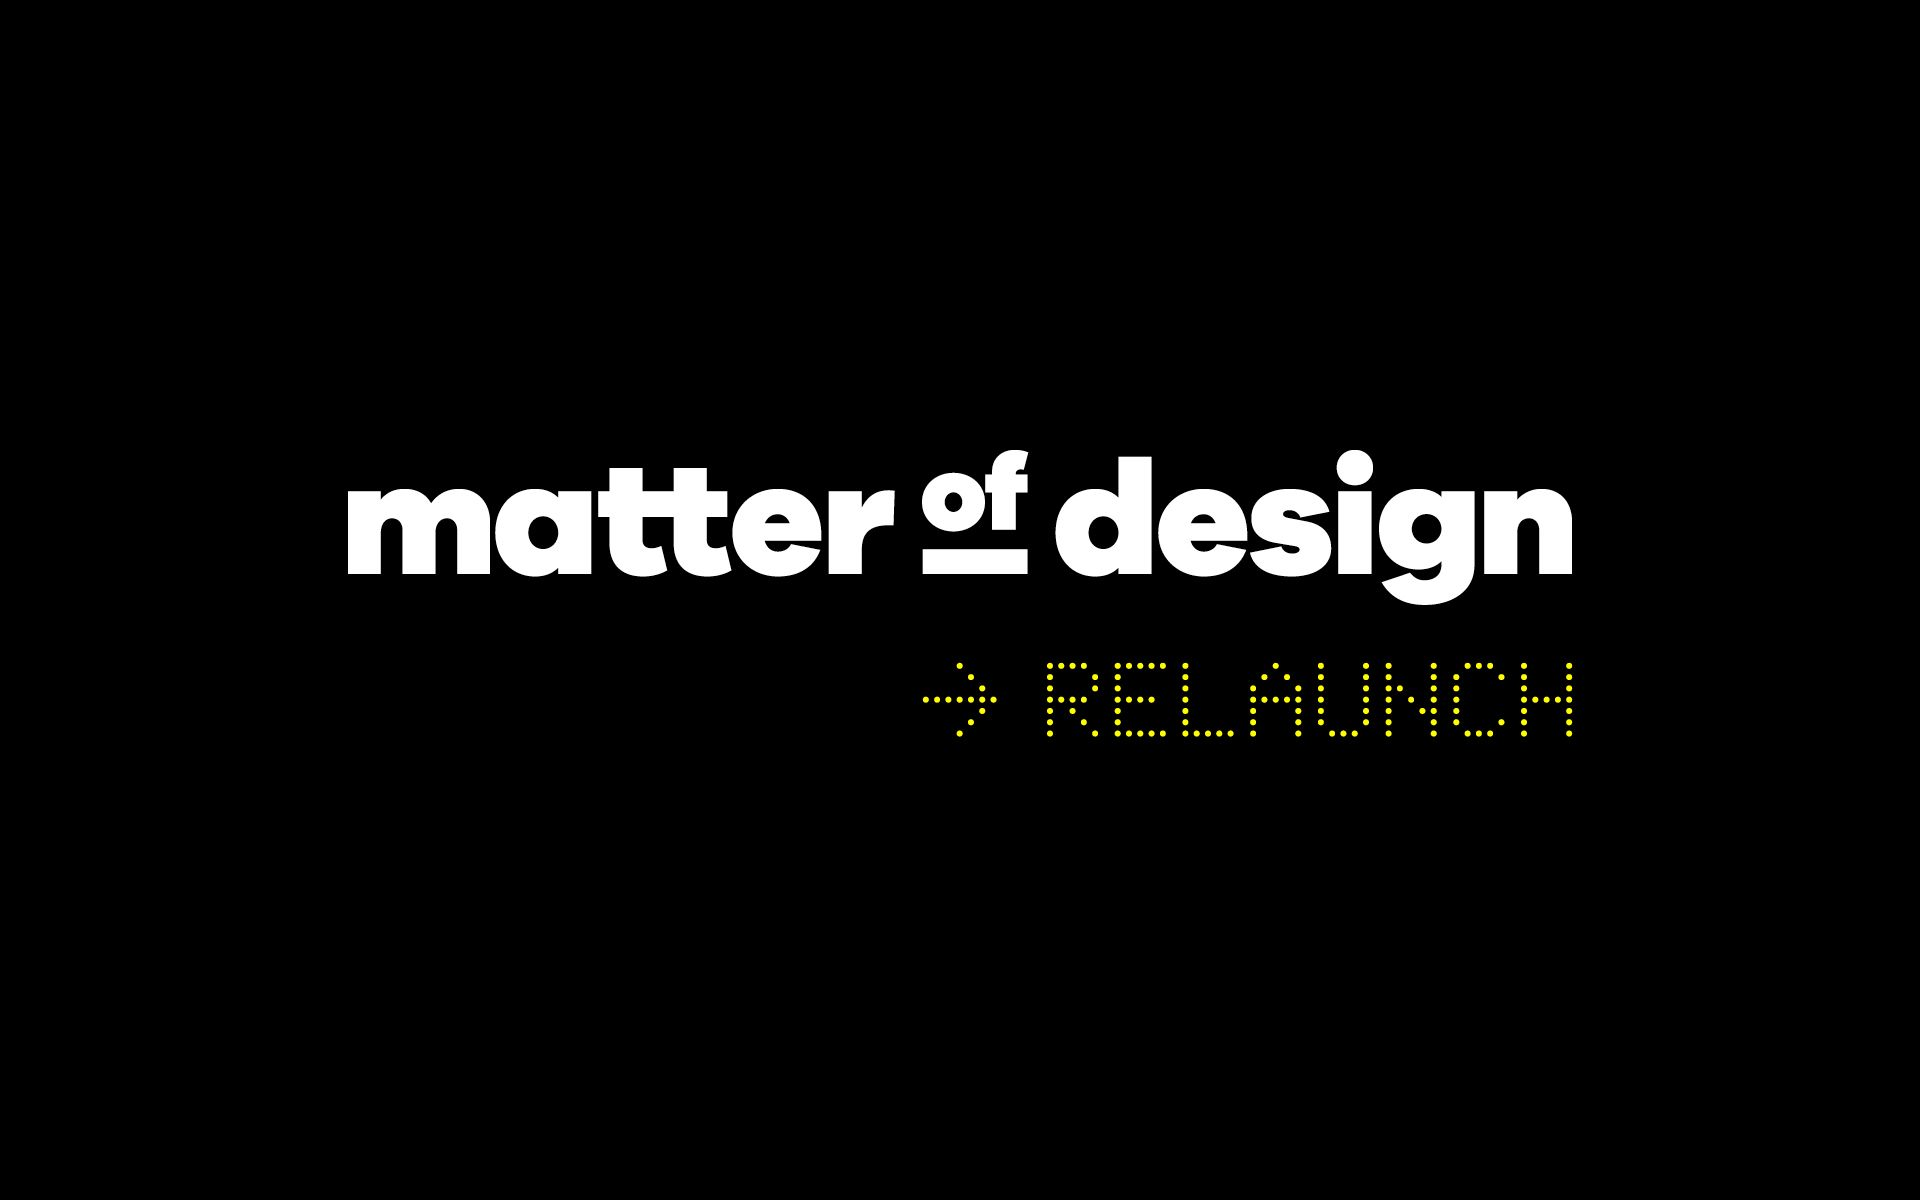 stay golden, Matter of Design, Fachblog, Relaunch, Update, Digital, Web Design, UI, UX, Wordpress, Corporate Design